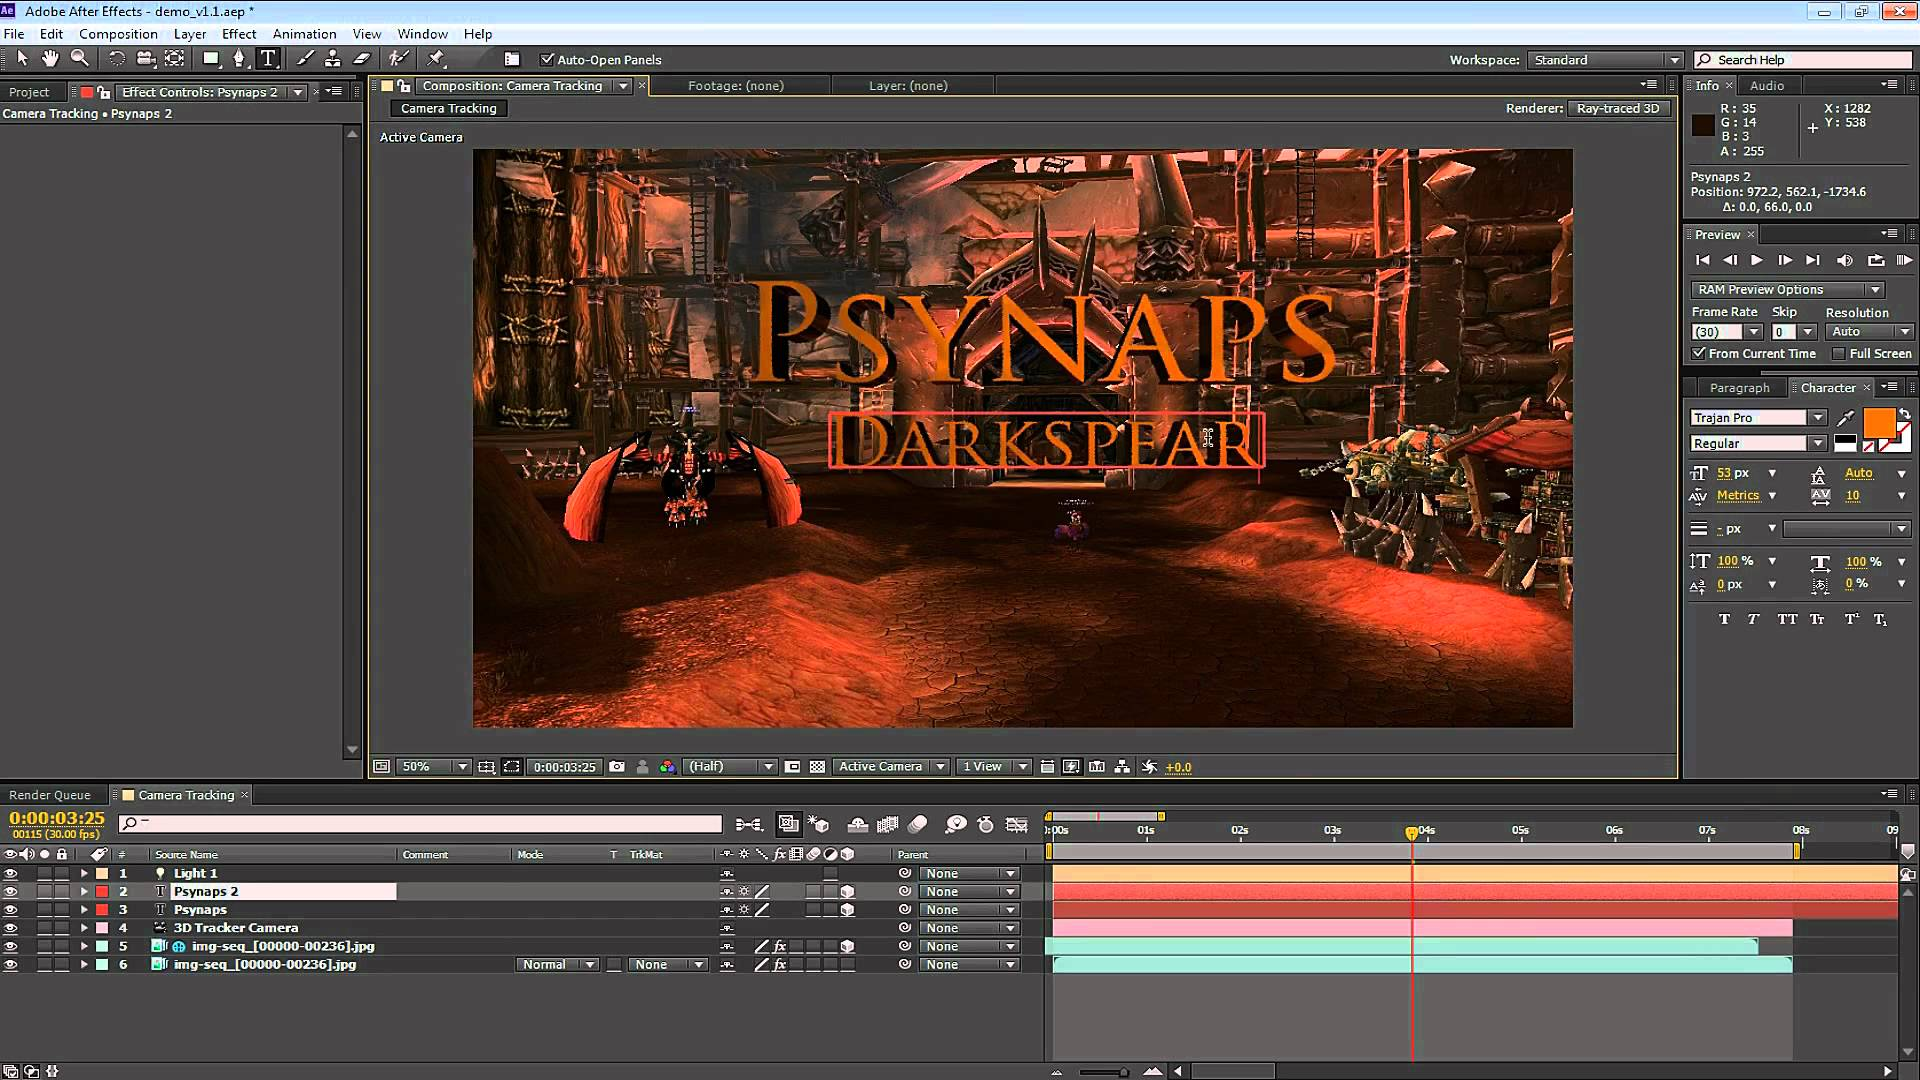 After Effects CS6+: 3D Camera Tracker and Ray-trace 3D – Project Download